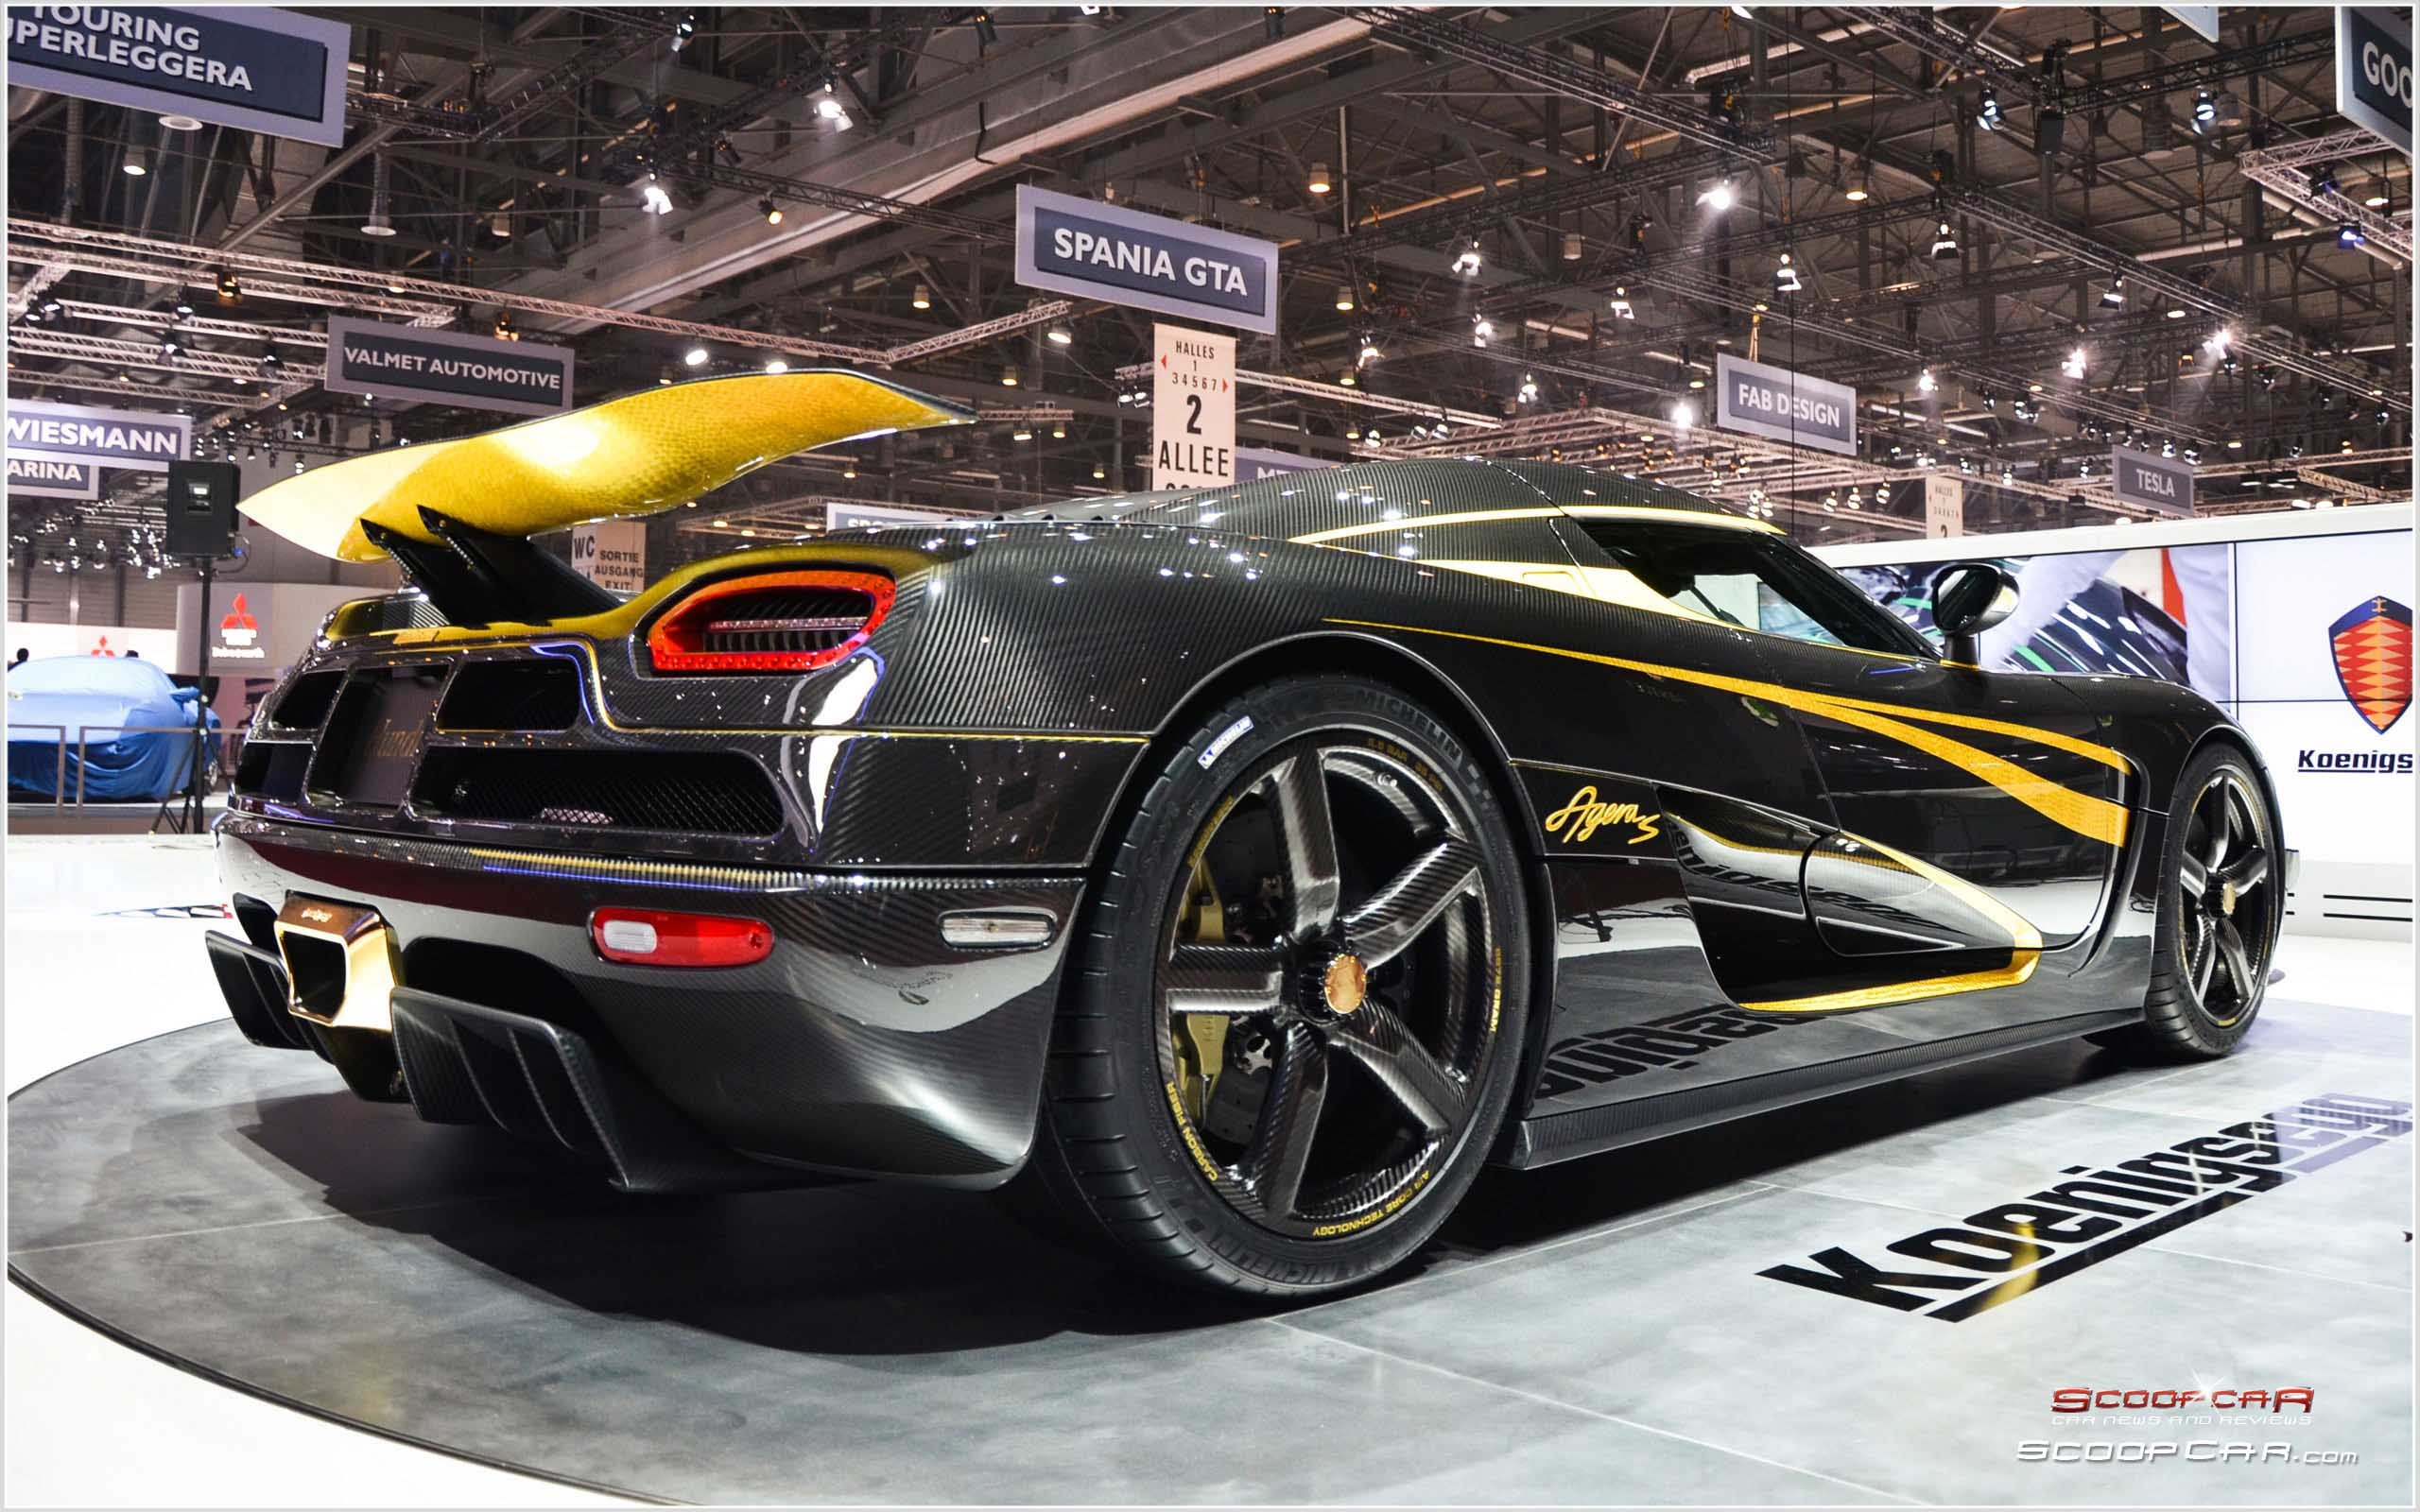 2560x1600 2014 Koenigsegg Agera Concept Picture Wallpaper is hd wallpaper for desktop  background iphone, computer,